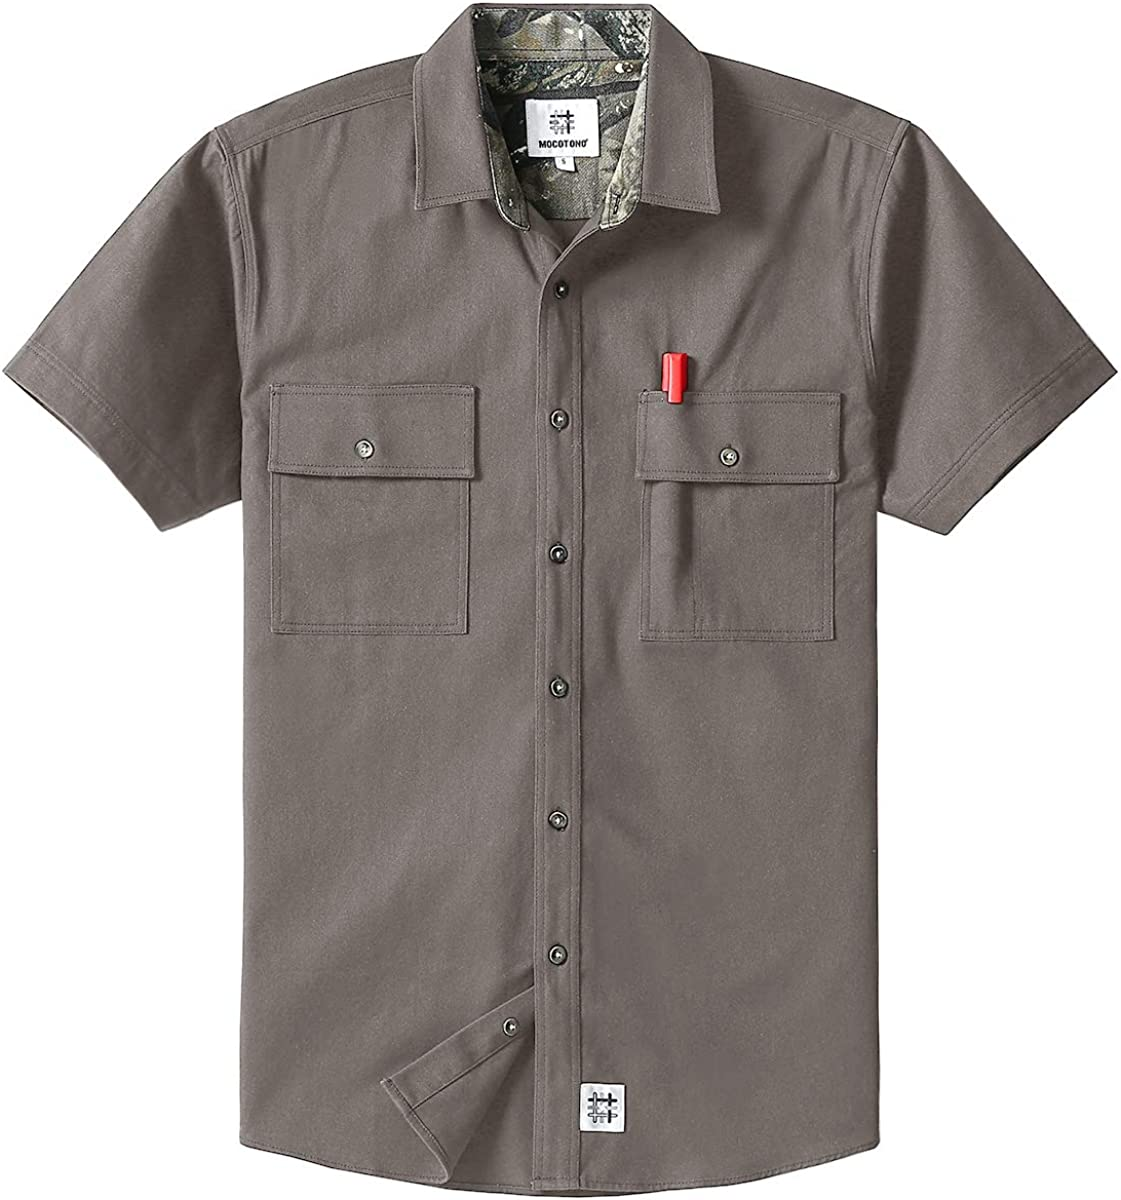 60s , 70s Hippie Clothes for Men Mens Short Sleeve Canvas Button-Up Work Shirt $24.99 AT vintagedancer.com